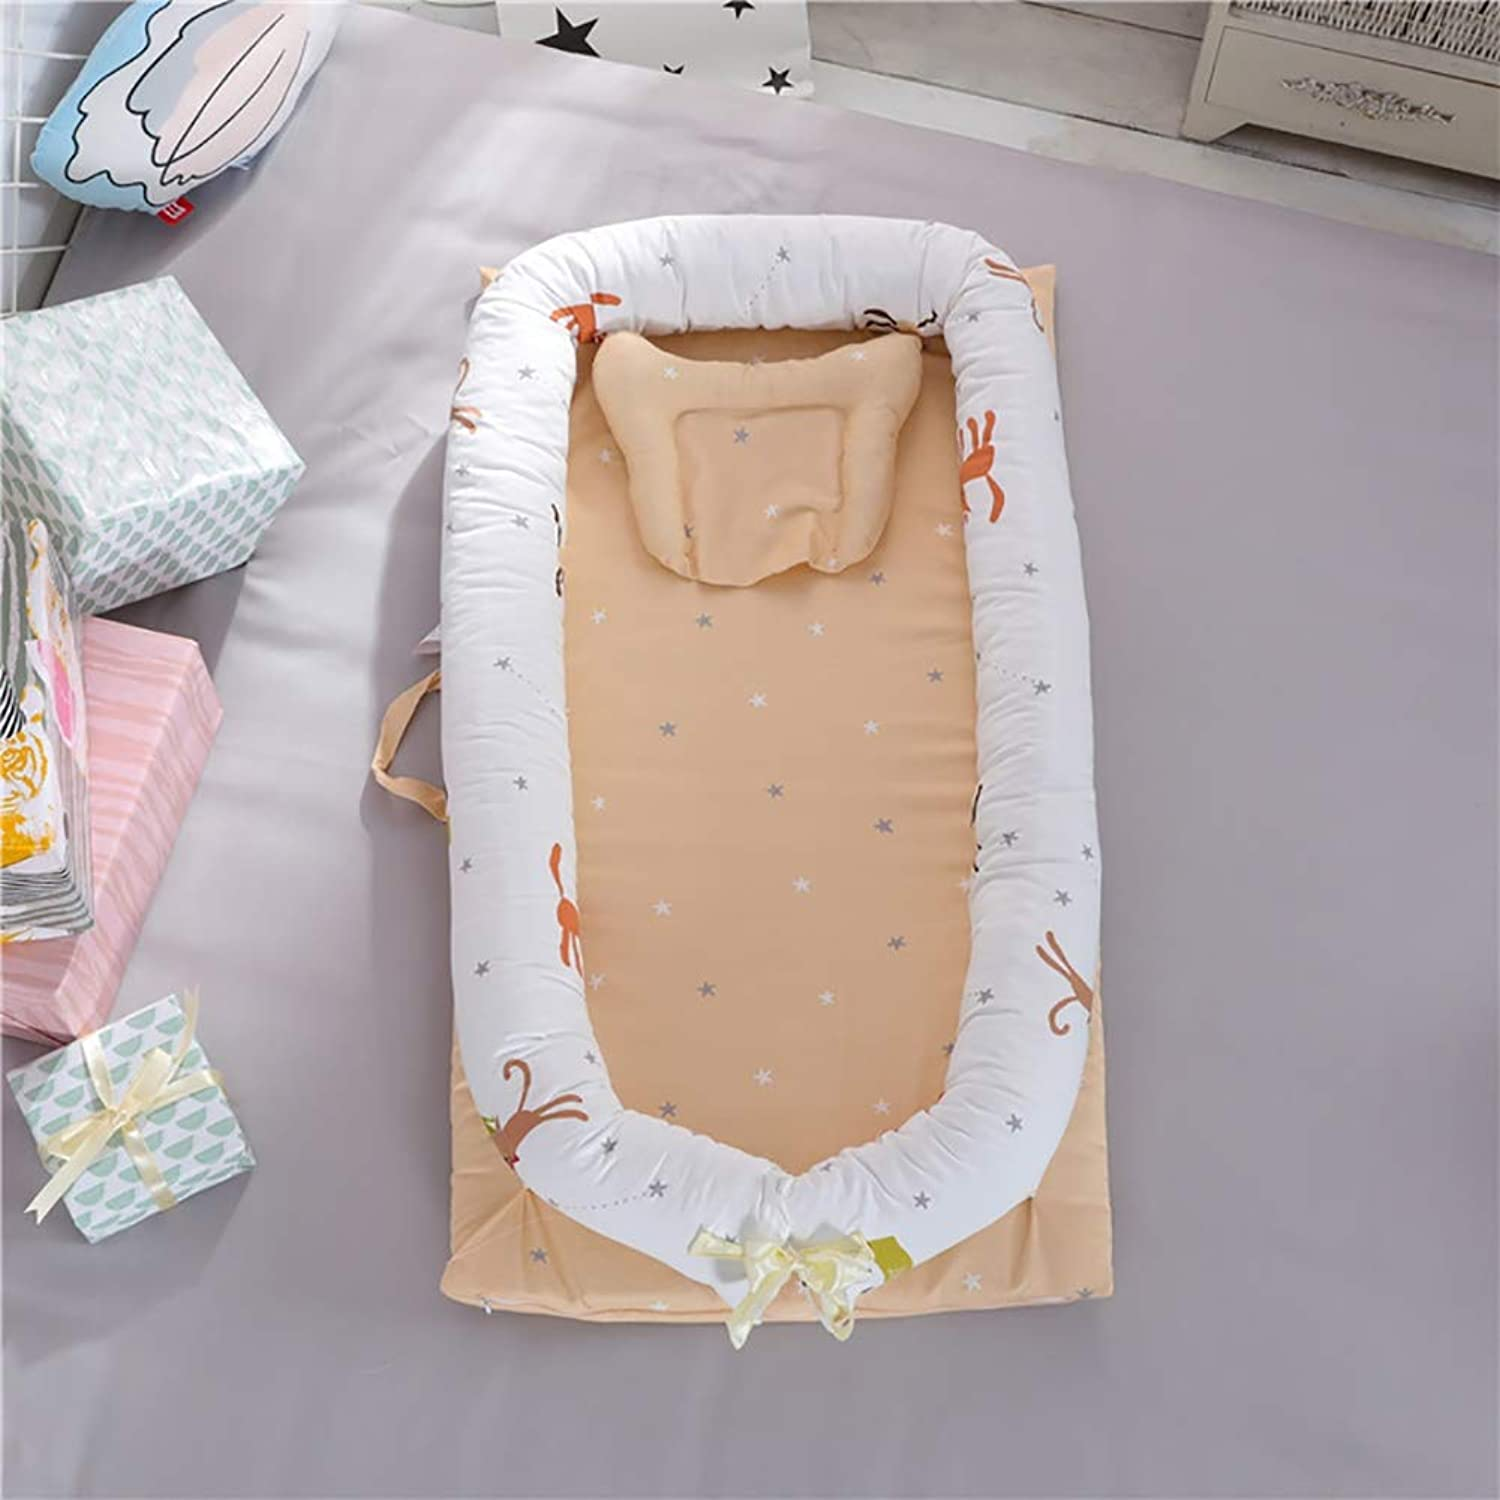 L L Baby Nest Crib Cotton Portable Newborn Isolated Bed Detachable Cover 90  55  15CM 35.4  21.7  5.9 inch, 3